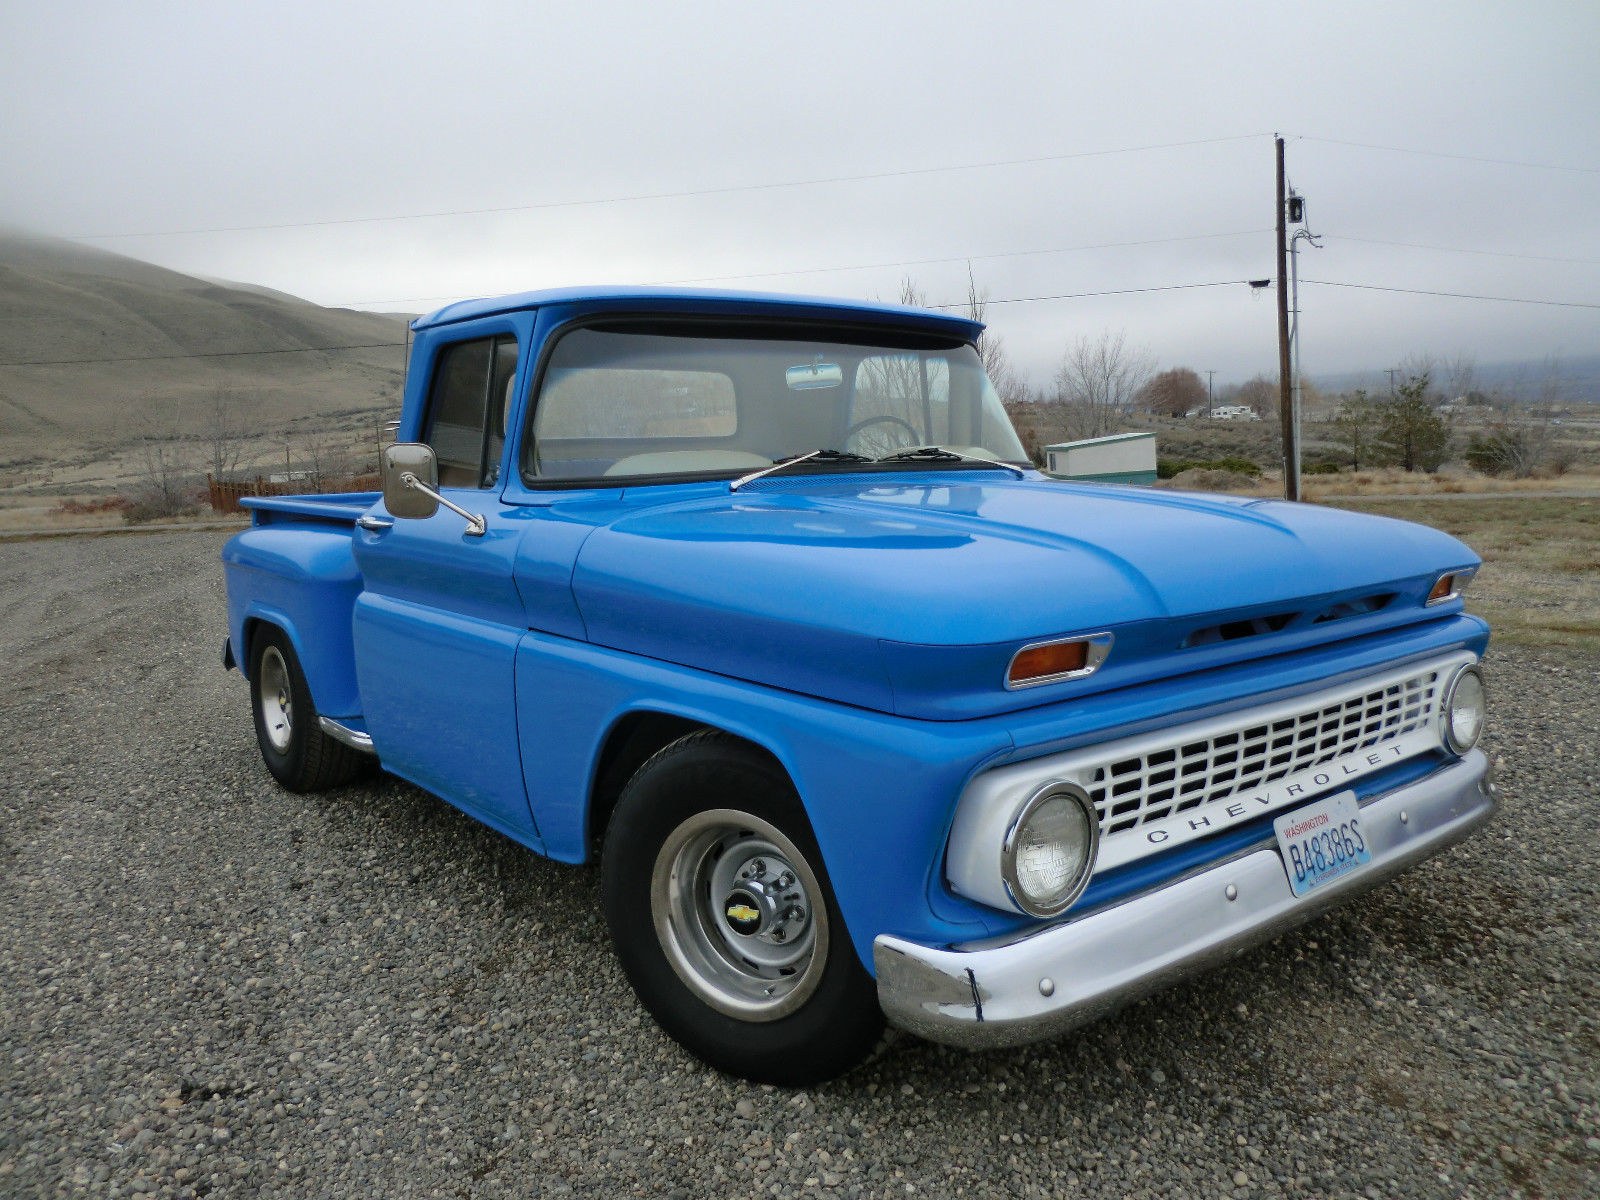 1963 Chevy C10 Restored No Reserve Short Bed Step Side C 10 350 350 Disc Pwr For Sale In West Richland Washington United States For Sale Photos Technical Specifications Description